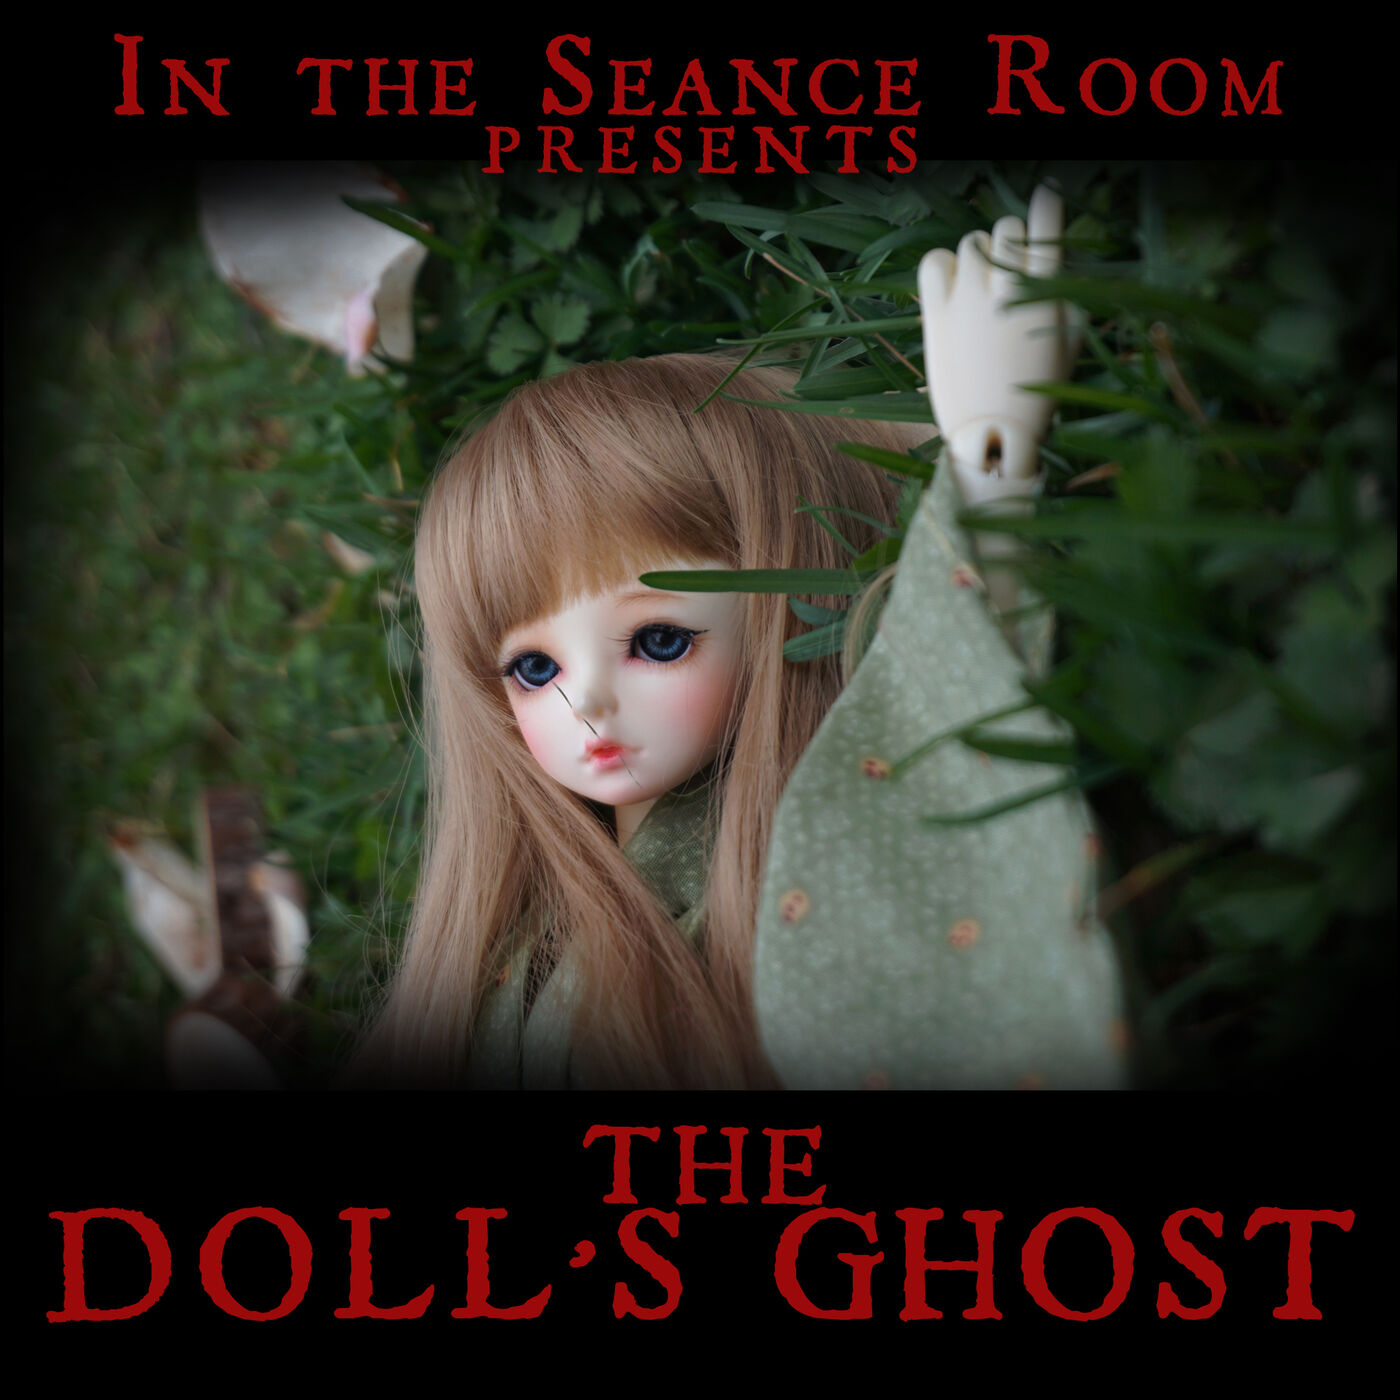 The Doll's Ghost